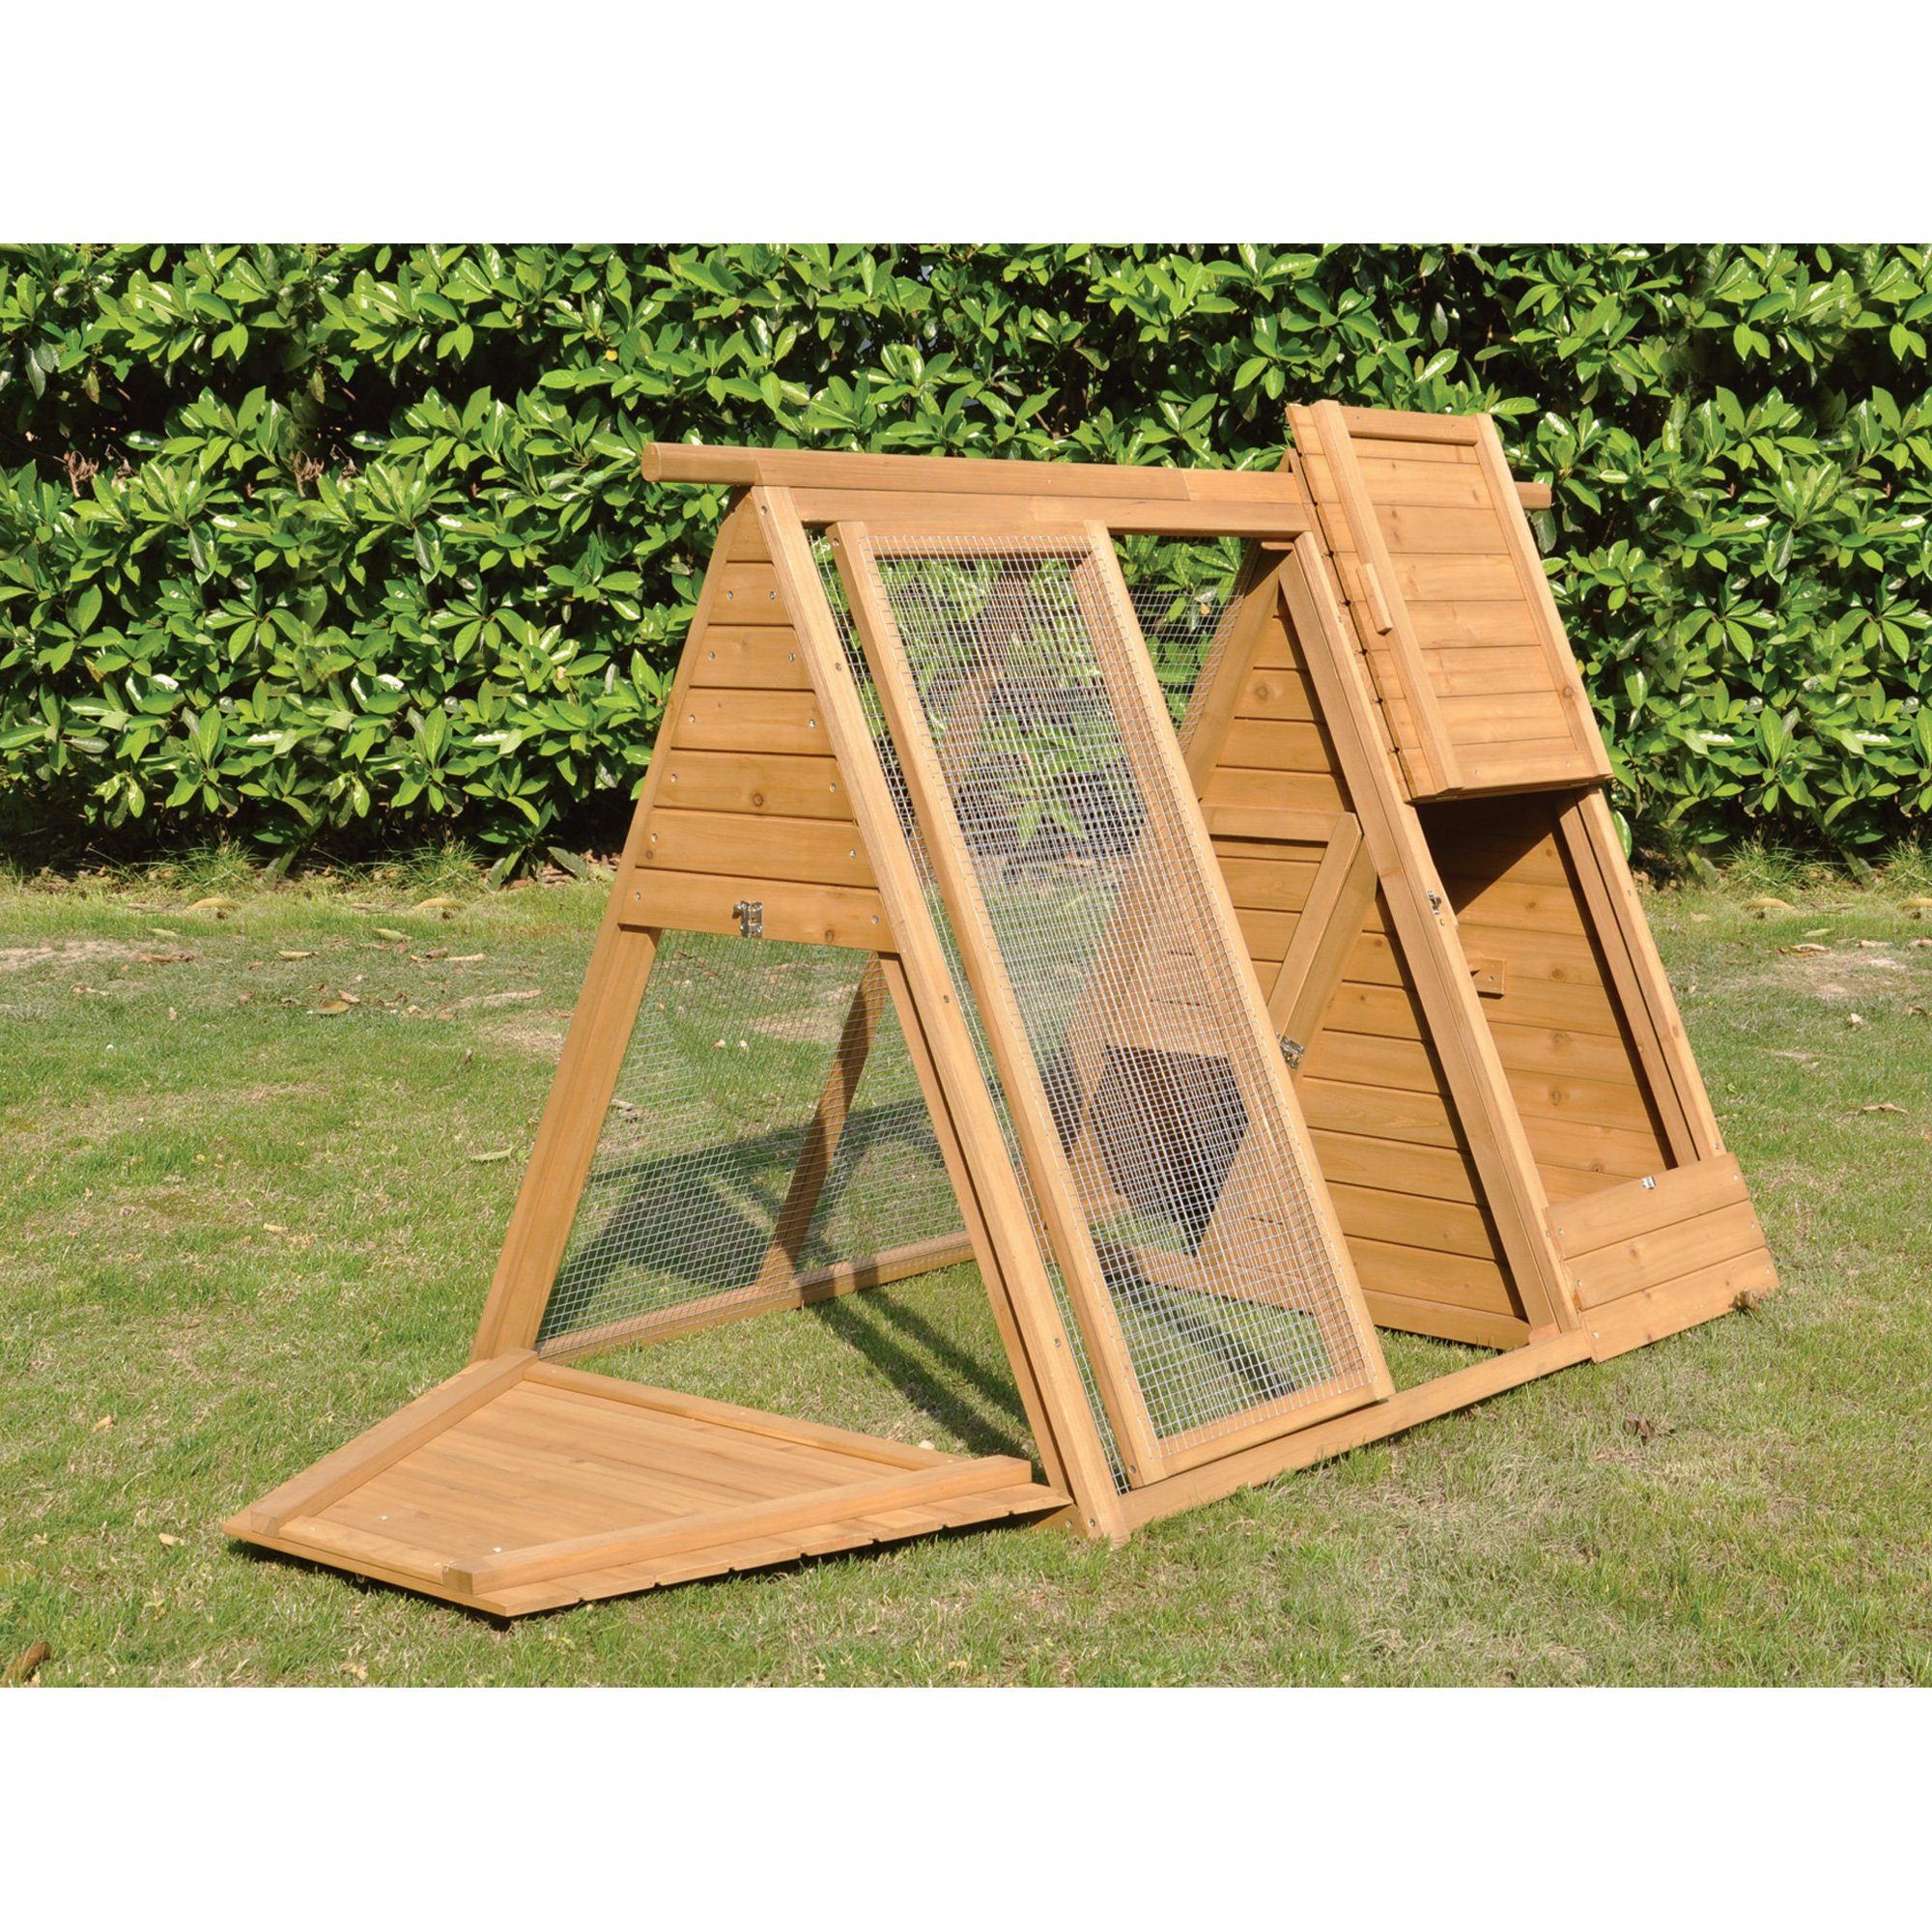 A-Frame Wooden Chicken Coop with Run - 2 to 3 Hens